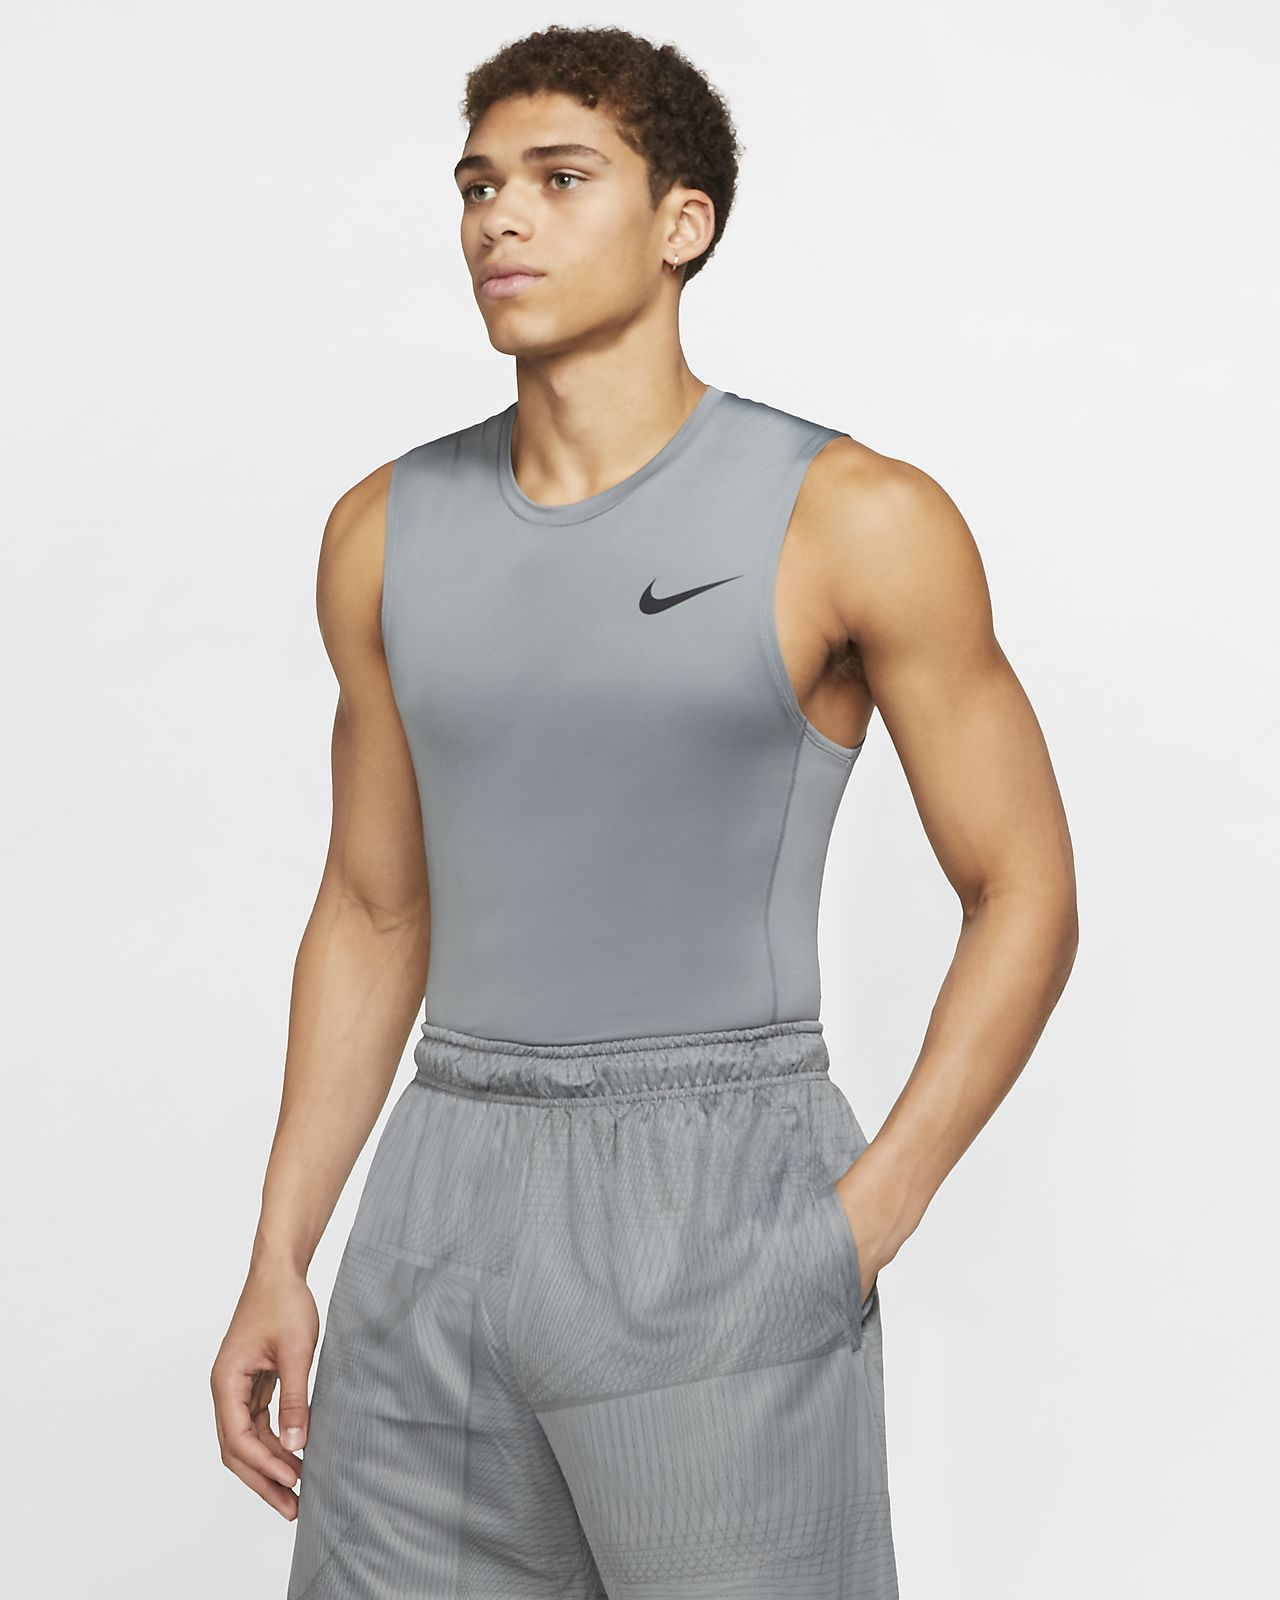 Nike Mens Activewear  Top Sleeveless Size Small